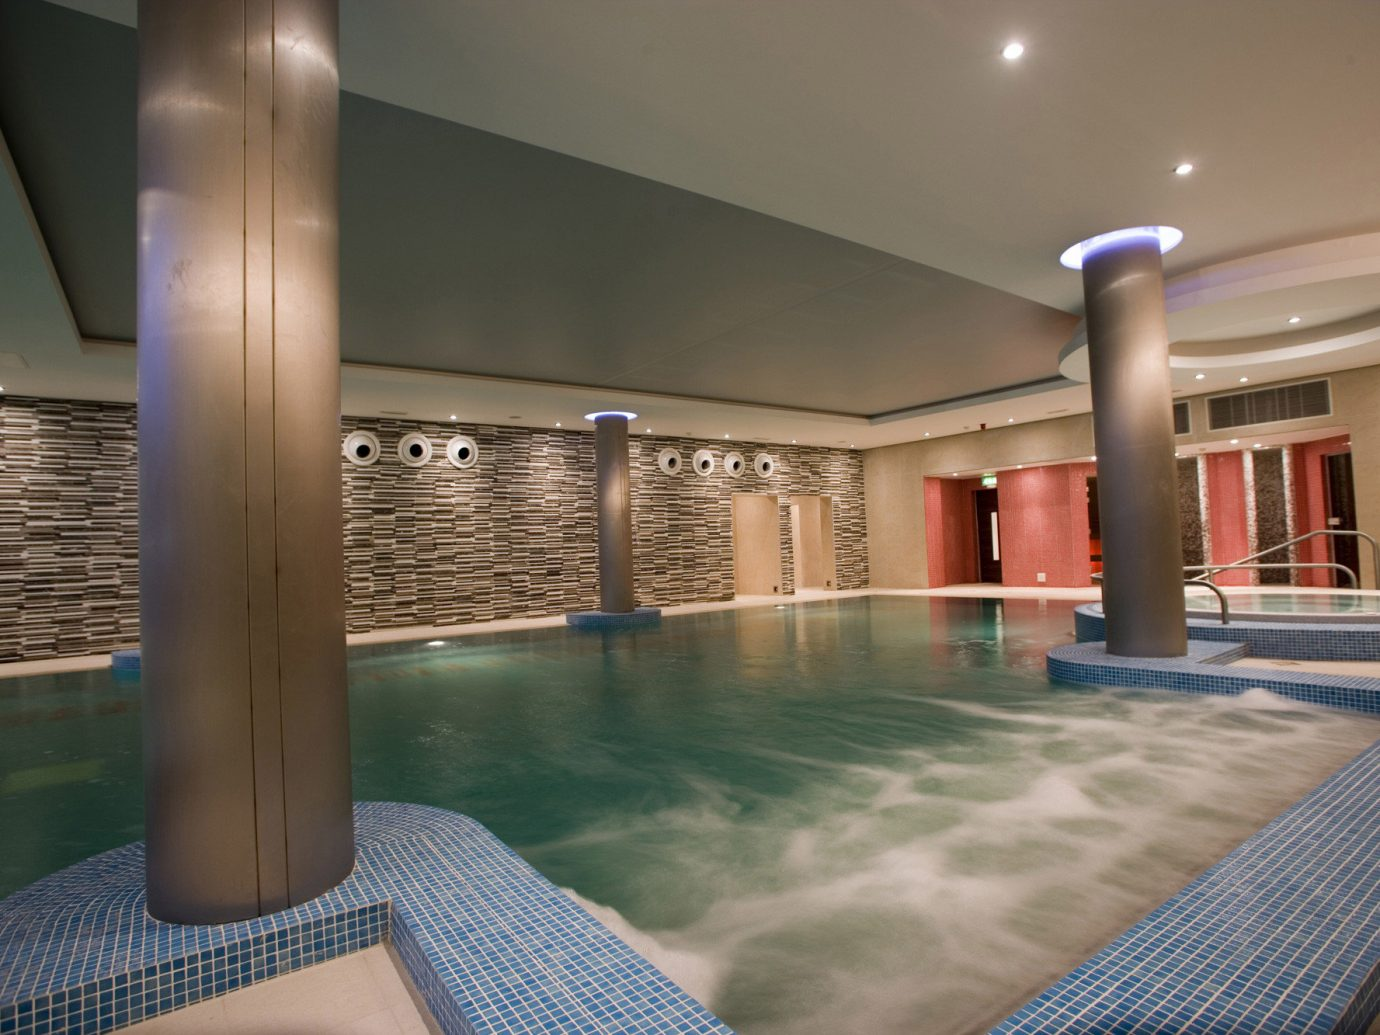 Dublin Ireland Trip Ideas indoor swimming pool ceiling leisure centre leisure interior design real estate Lobby estate apartment thermae floor amenity resort town flooring condominium